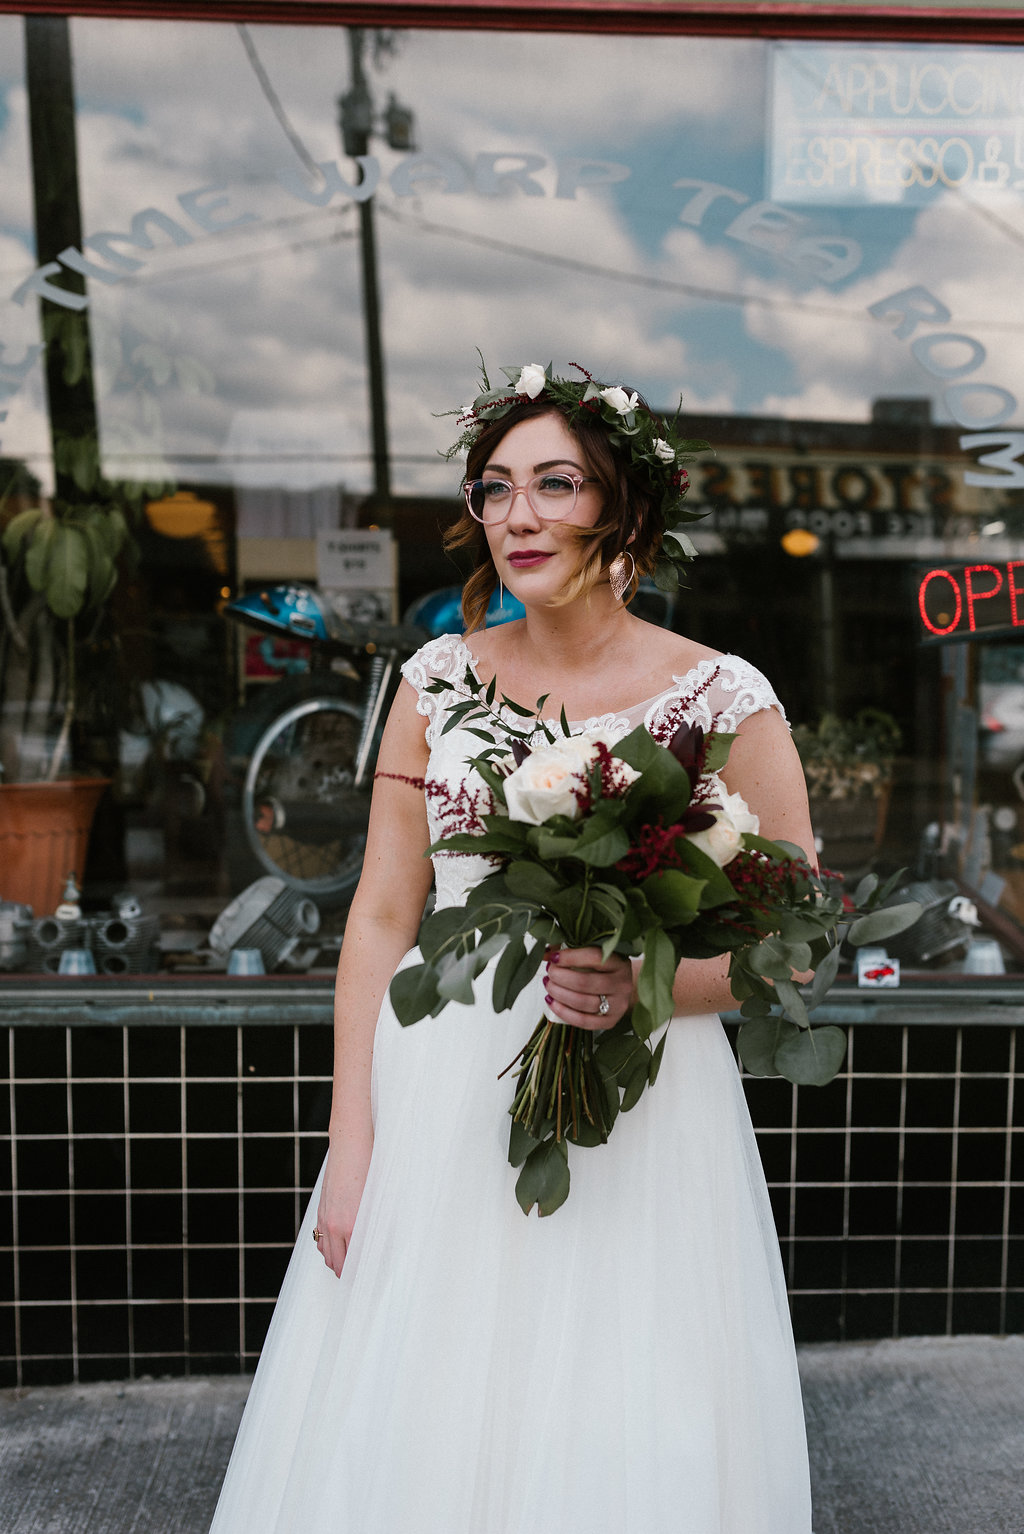 Standard Downtown Knoxville Wedding Venue Central Avenue